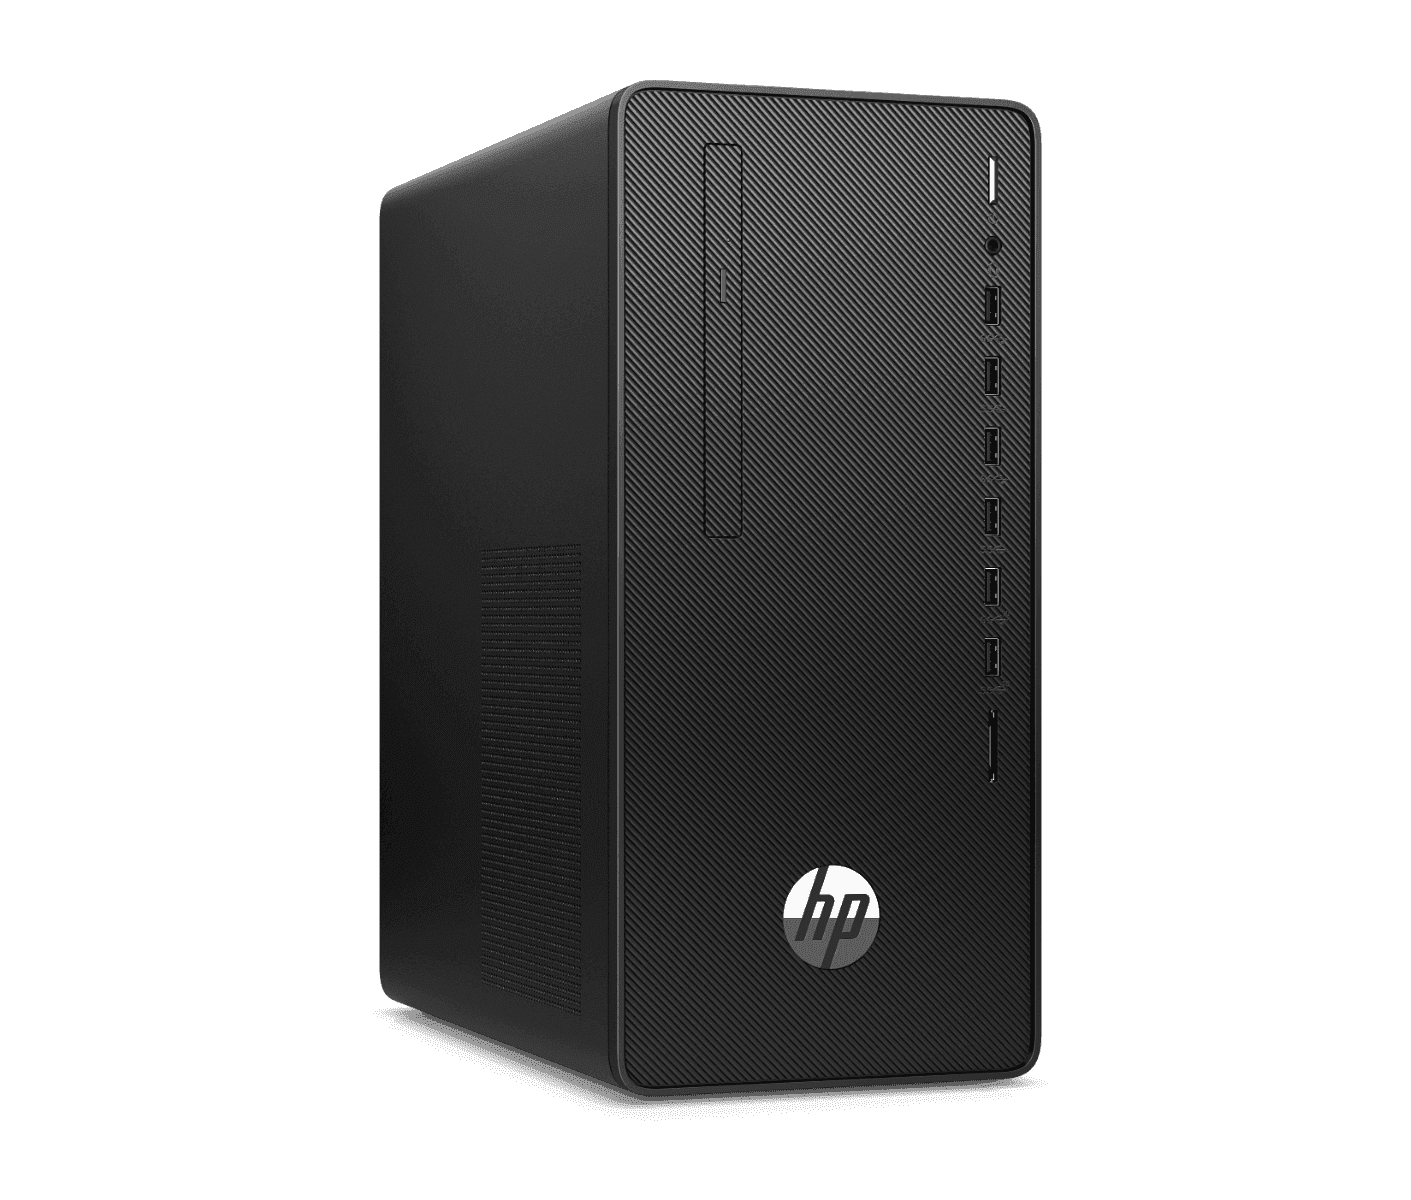 HP 280 Pro G6 Microtower PC   HP Store India